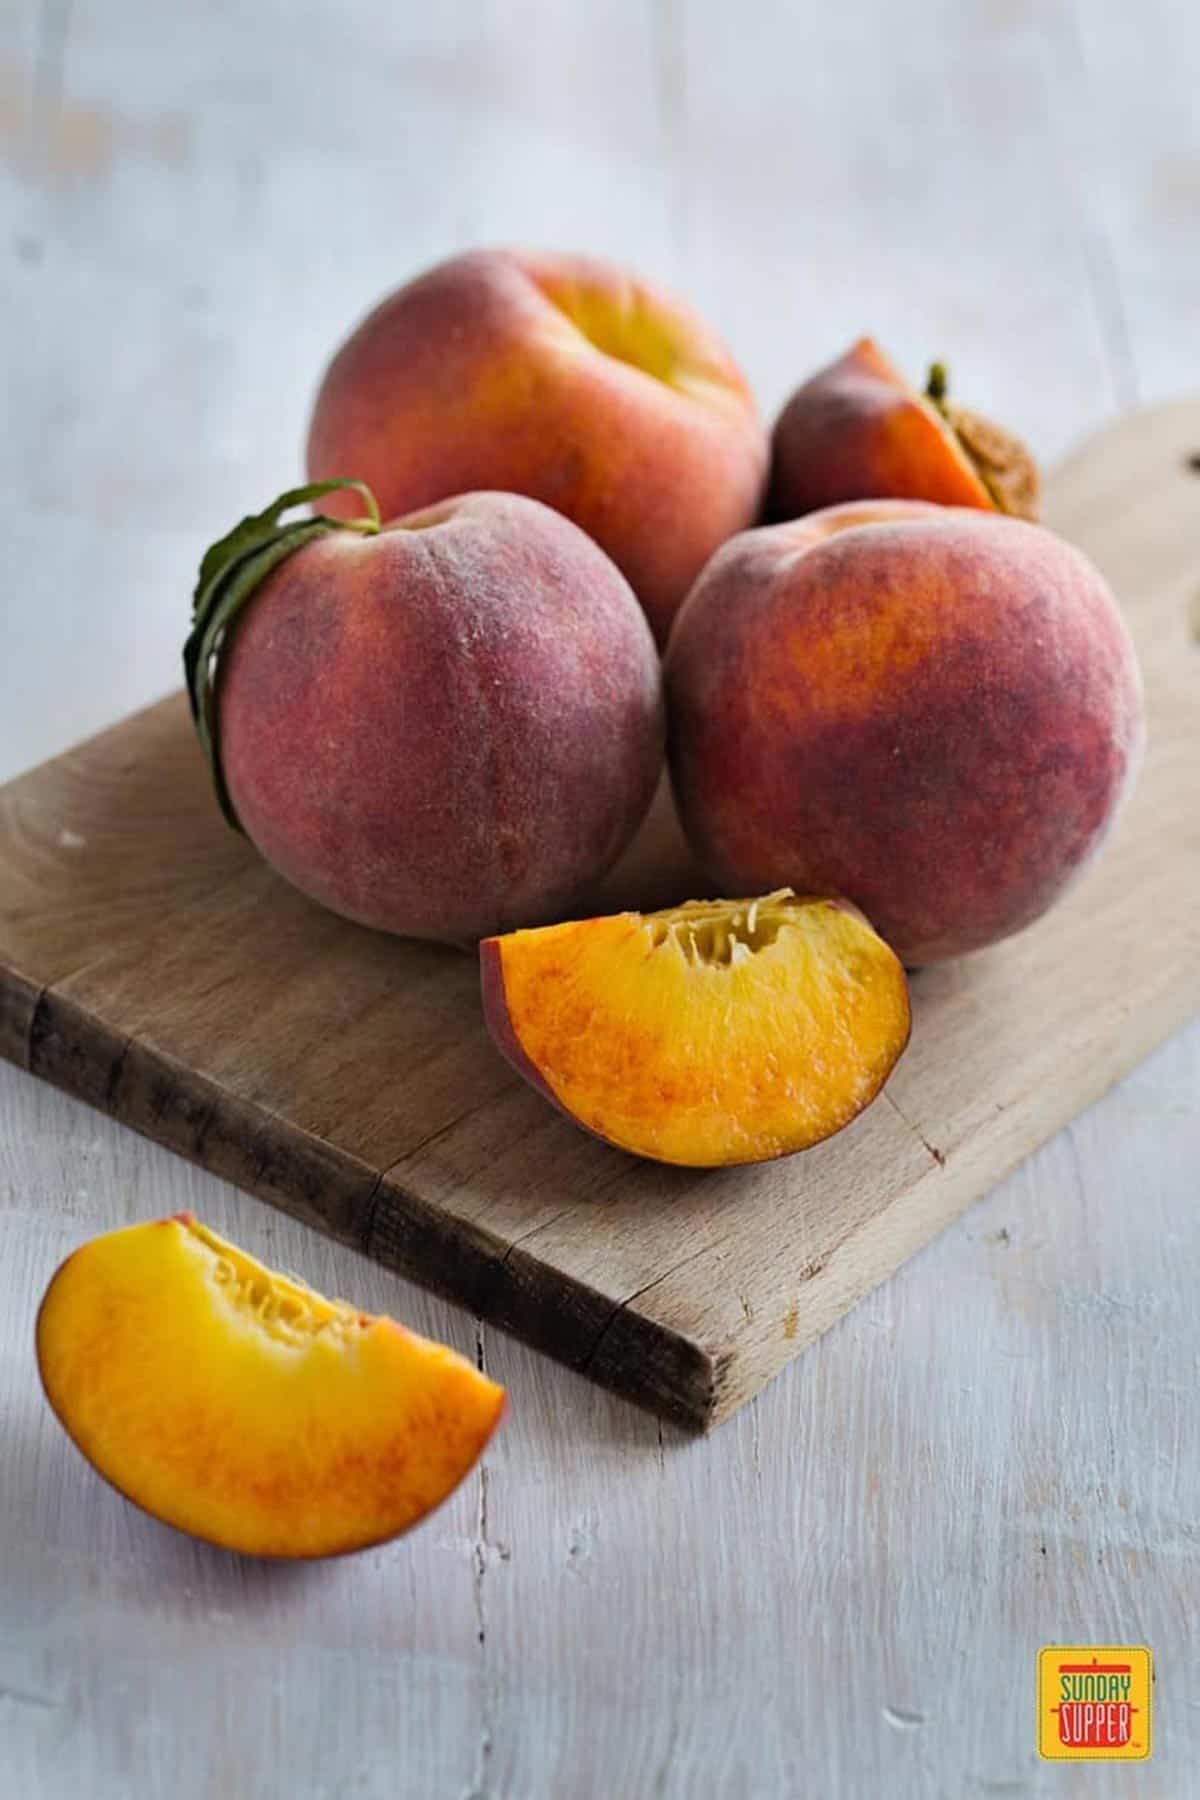 Two quarters of a peach next to three whole peaches and half a peach on a wooden board